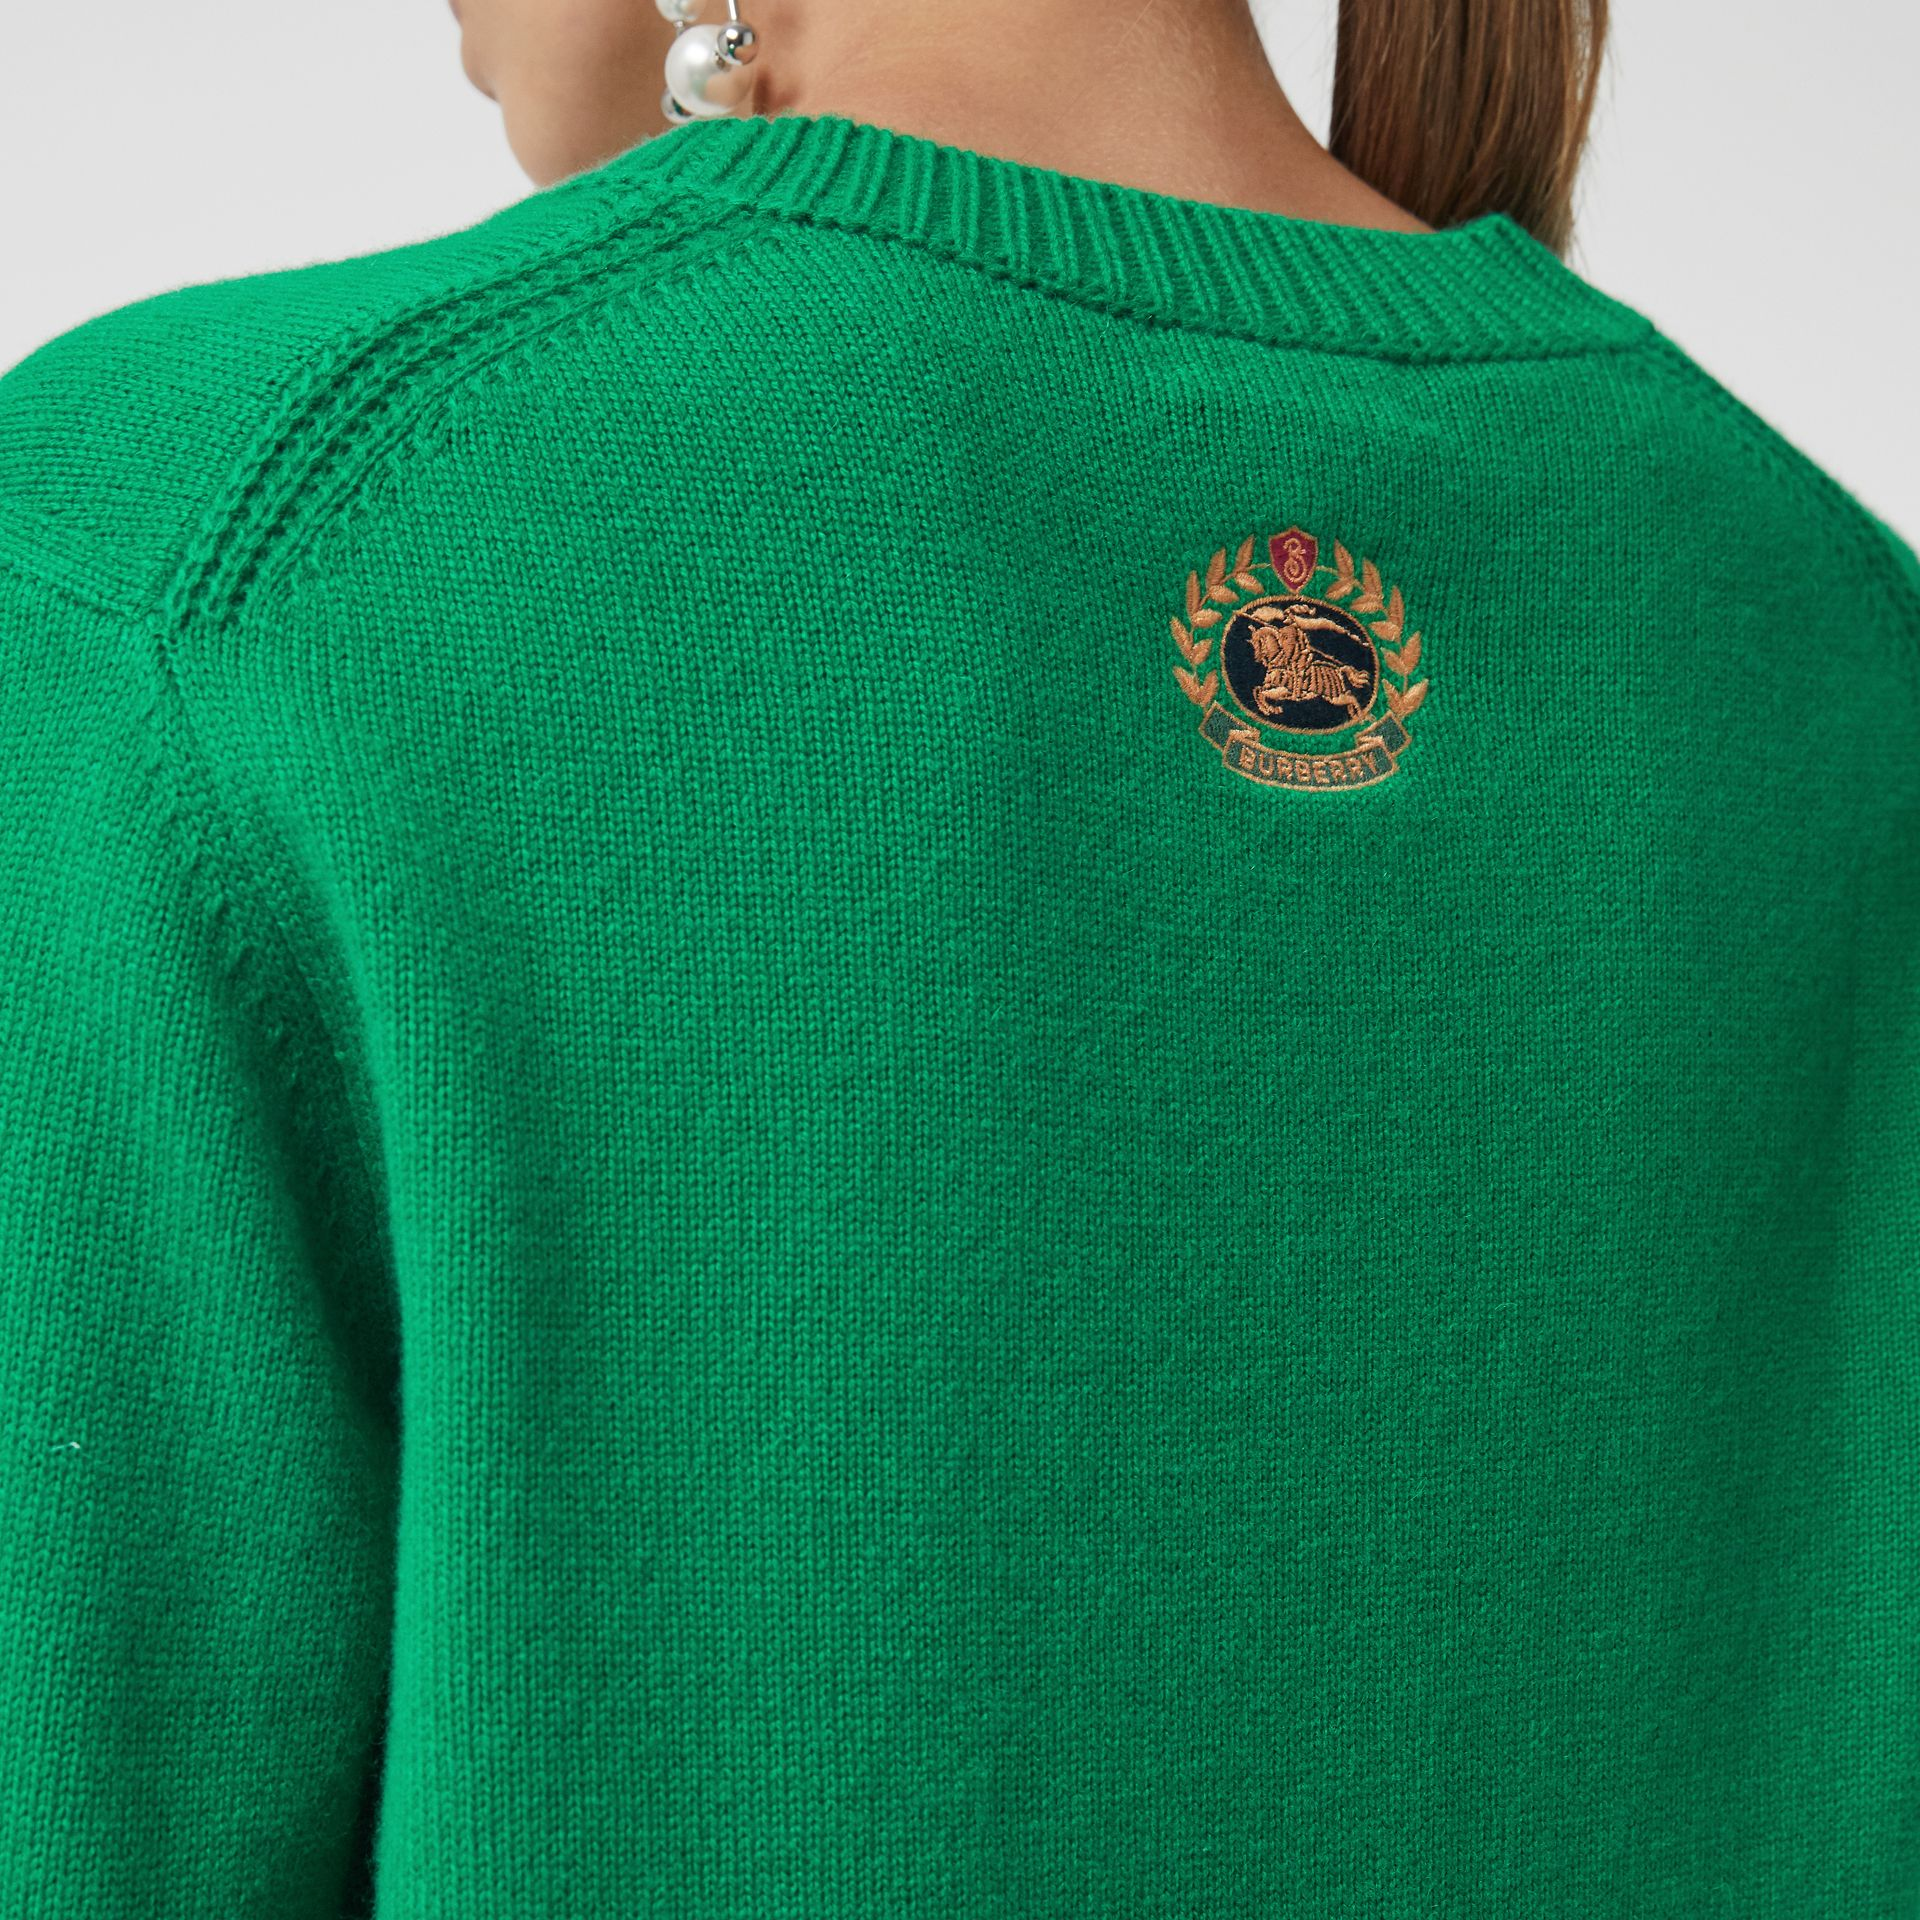 Archive Logo Appliqué Cashmere Sweater in Vibrant Green - Women | Burberry Hong Kong - gallery image 1